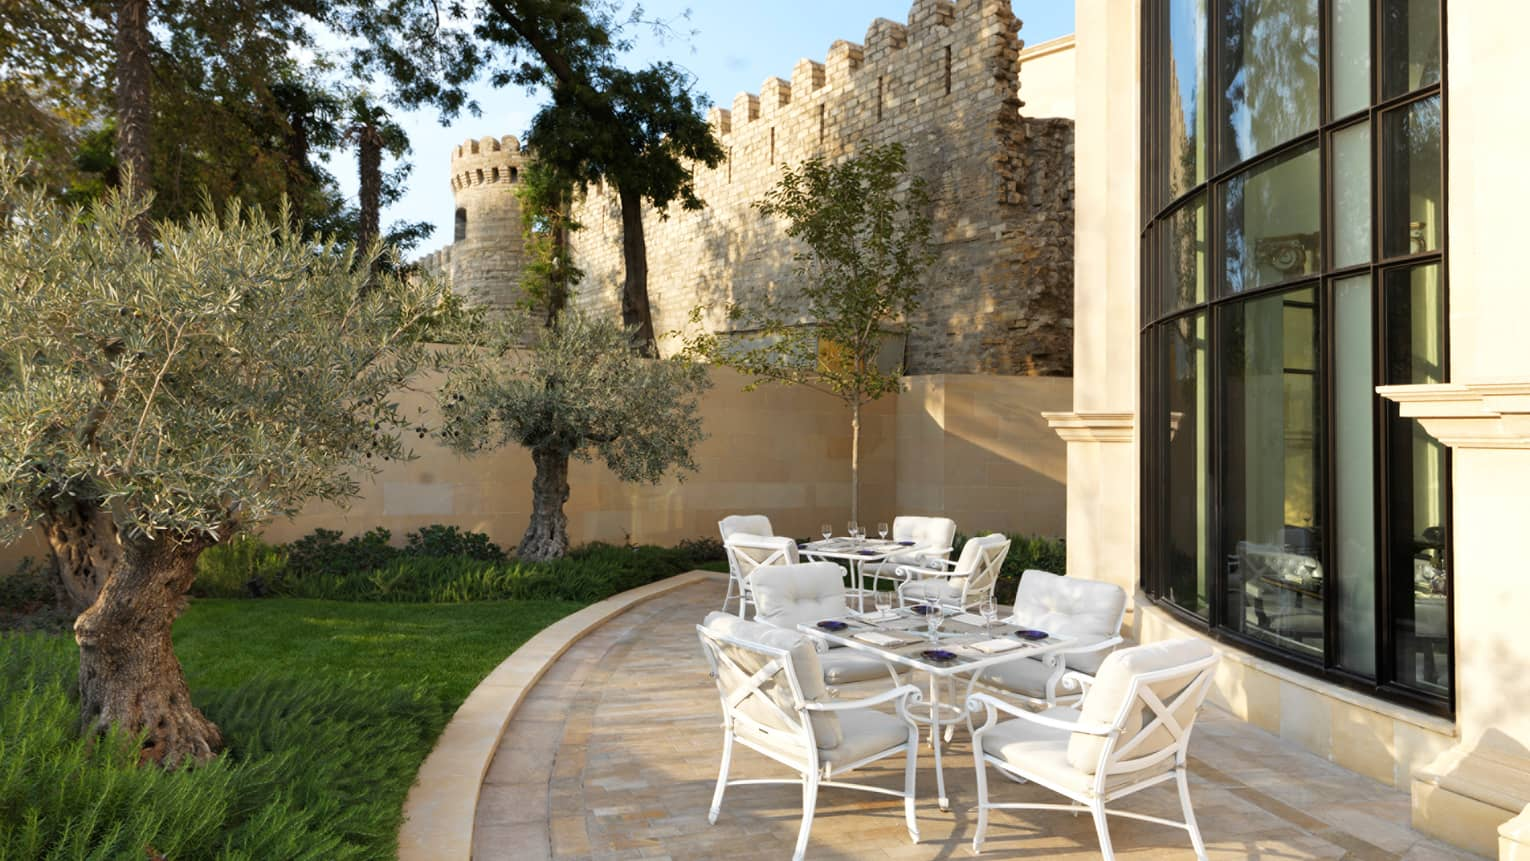 Zafferano curved patio with white iron tables and chairs, historic castle-like wall in background